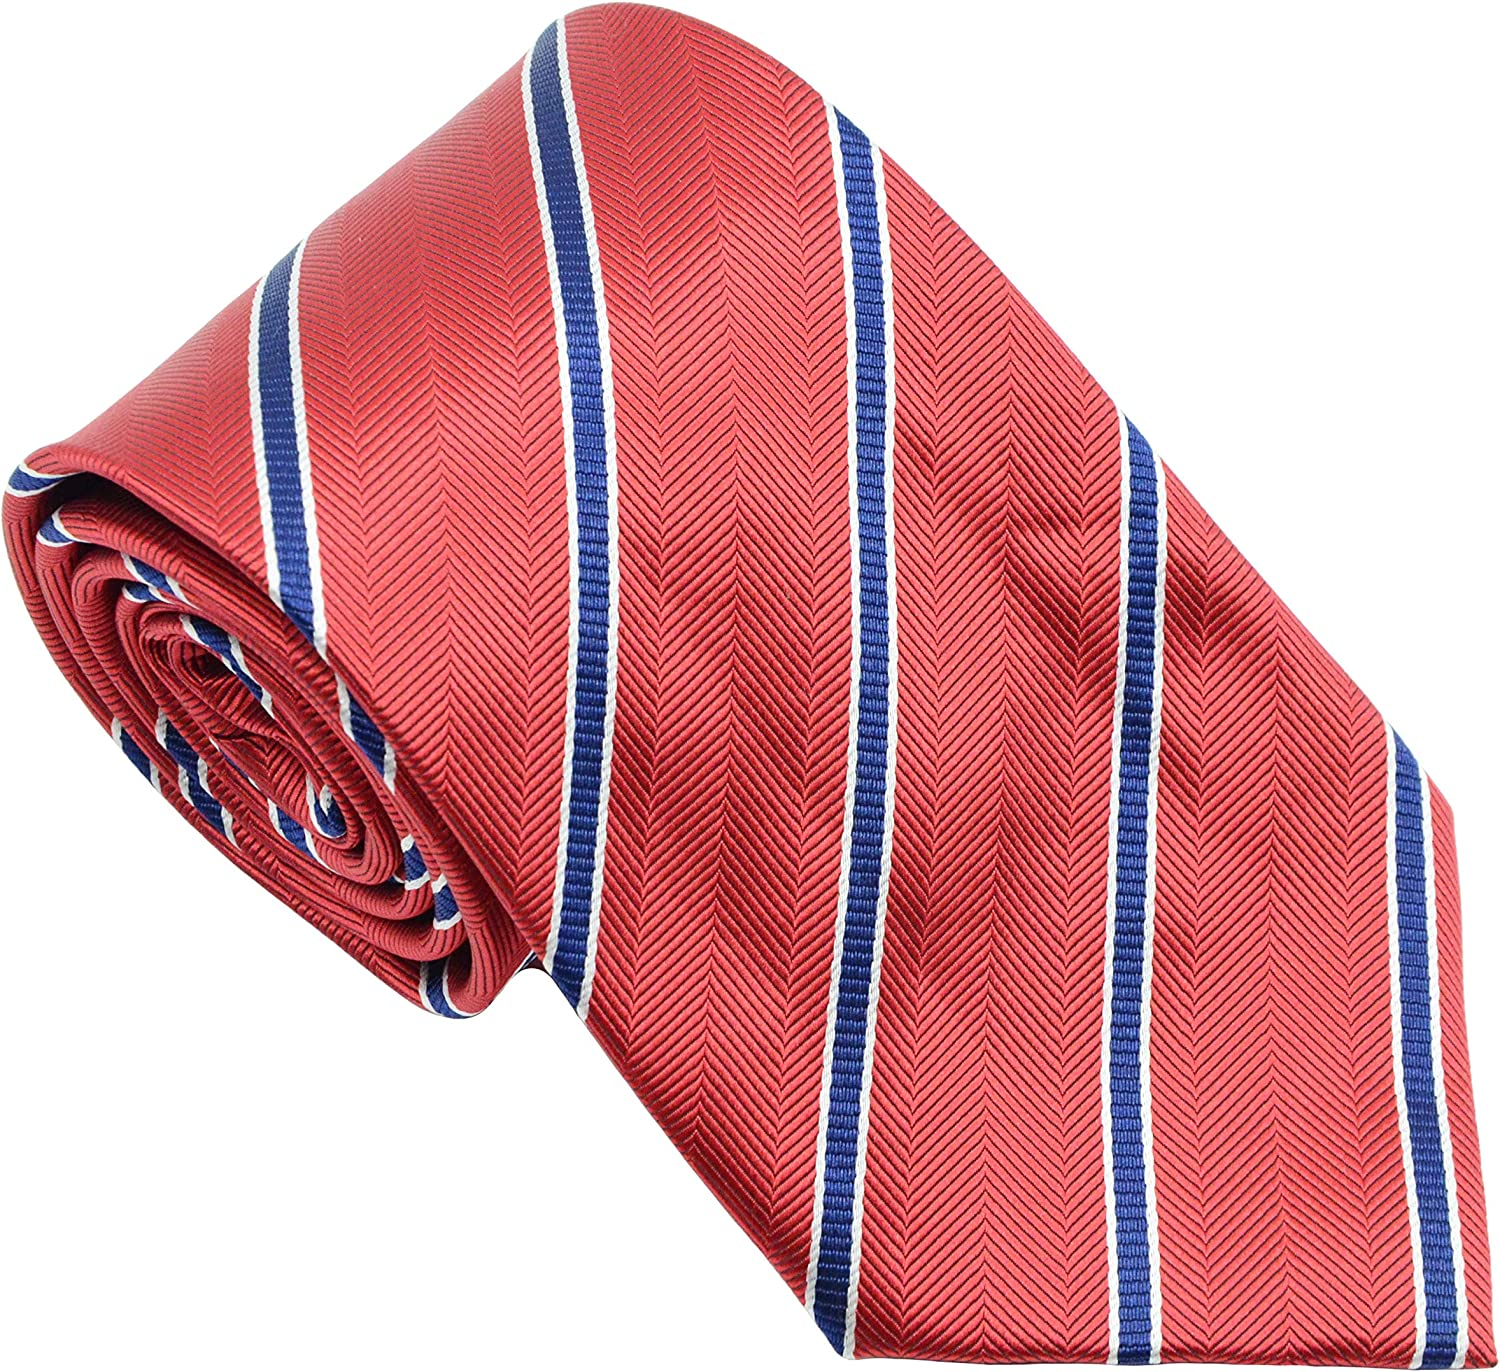 New Classic Striped Red lowest trend rank price Blue JACQUARD WOVEN Silk Neckt Tie Men's